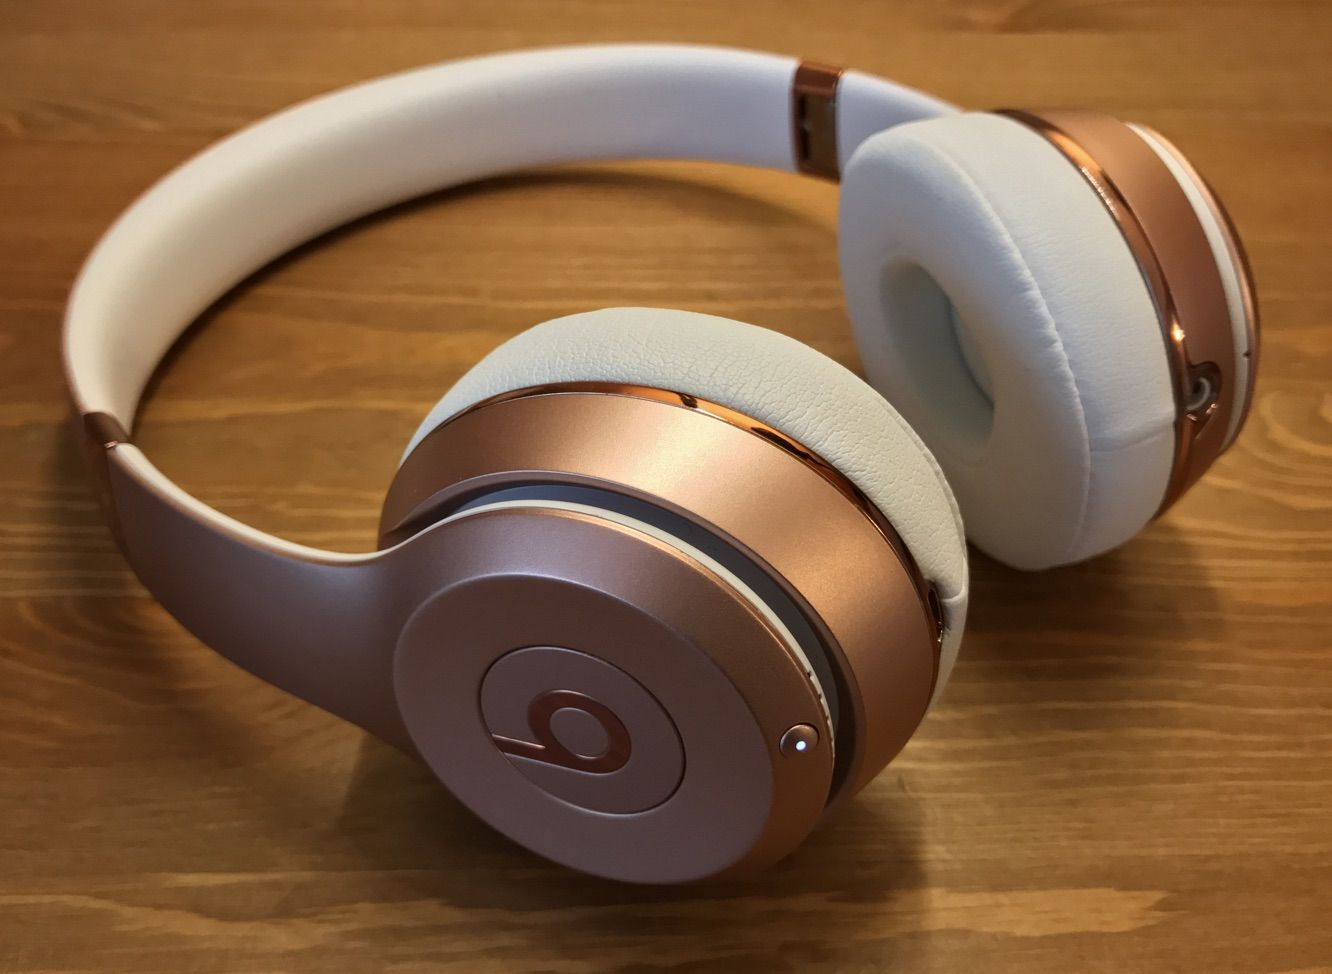 Headphones bluetooth beats rose gold - headphones beats dj pro